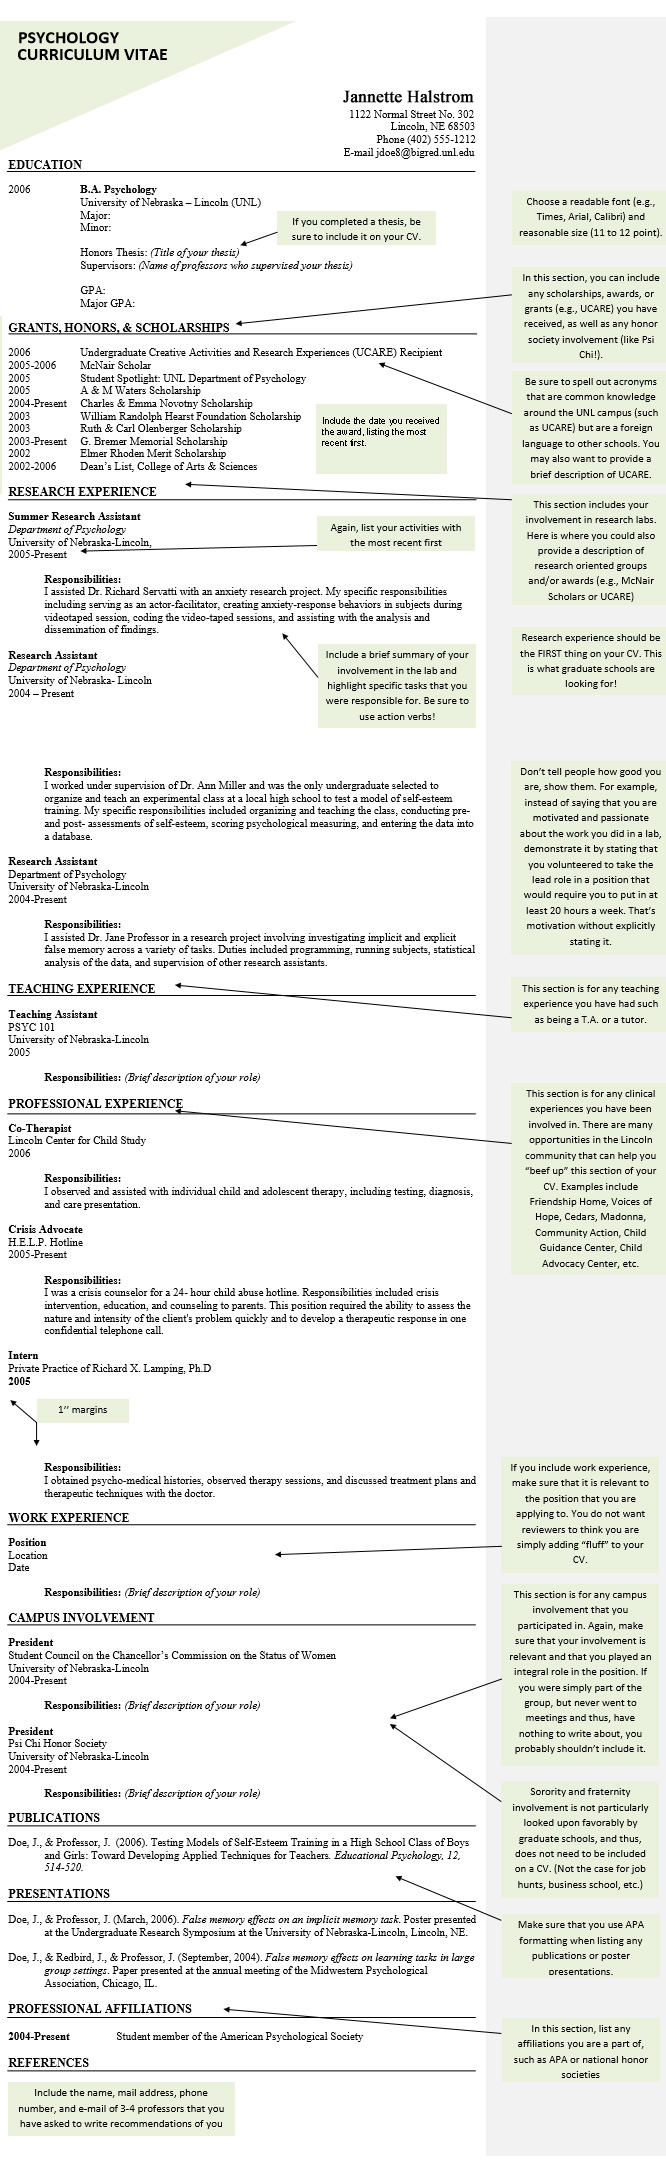 resumes and cvs graduate school custom essays online write my term paper buy essay cheap buy